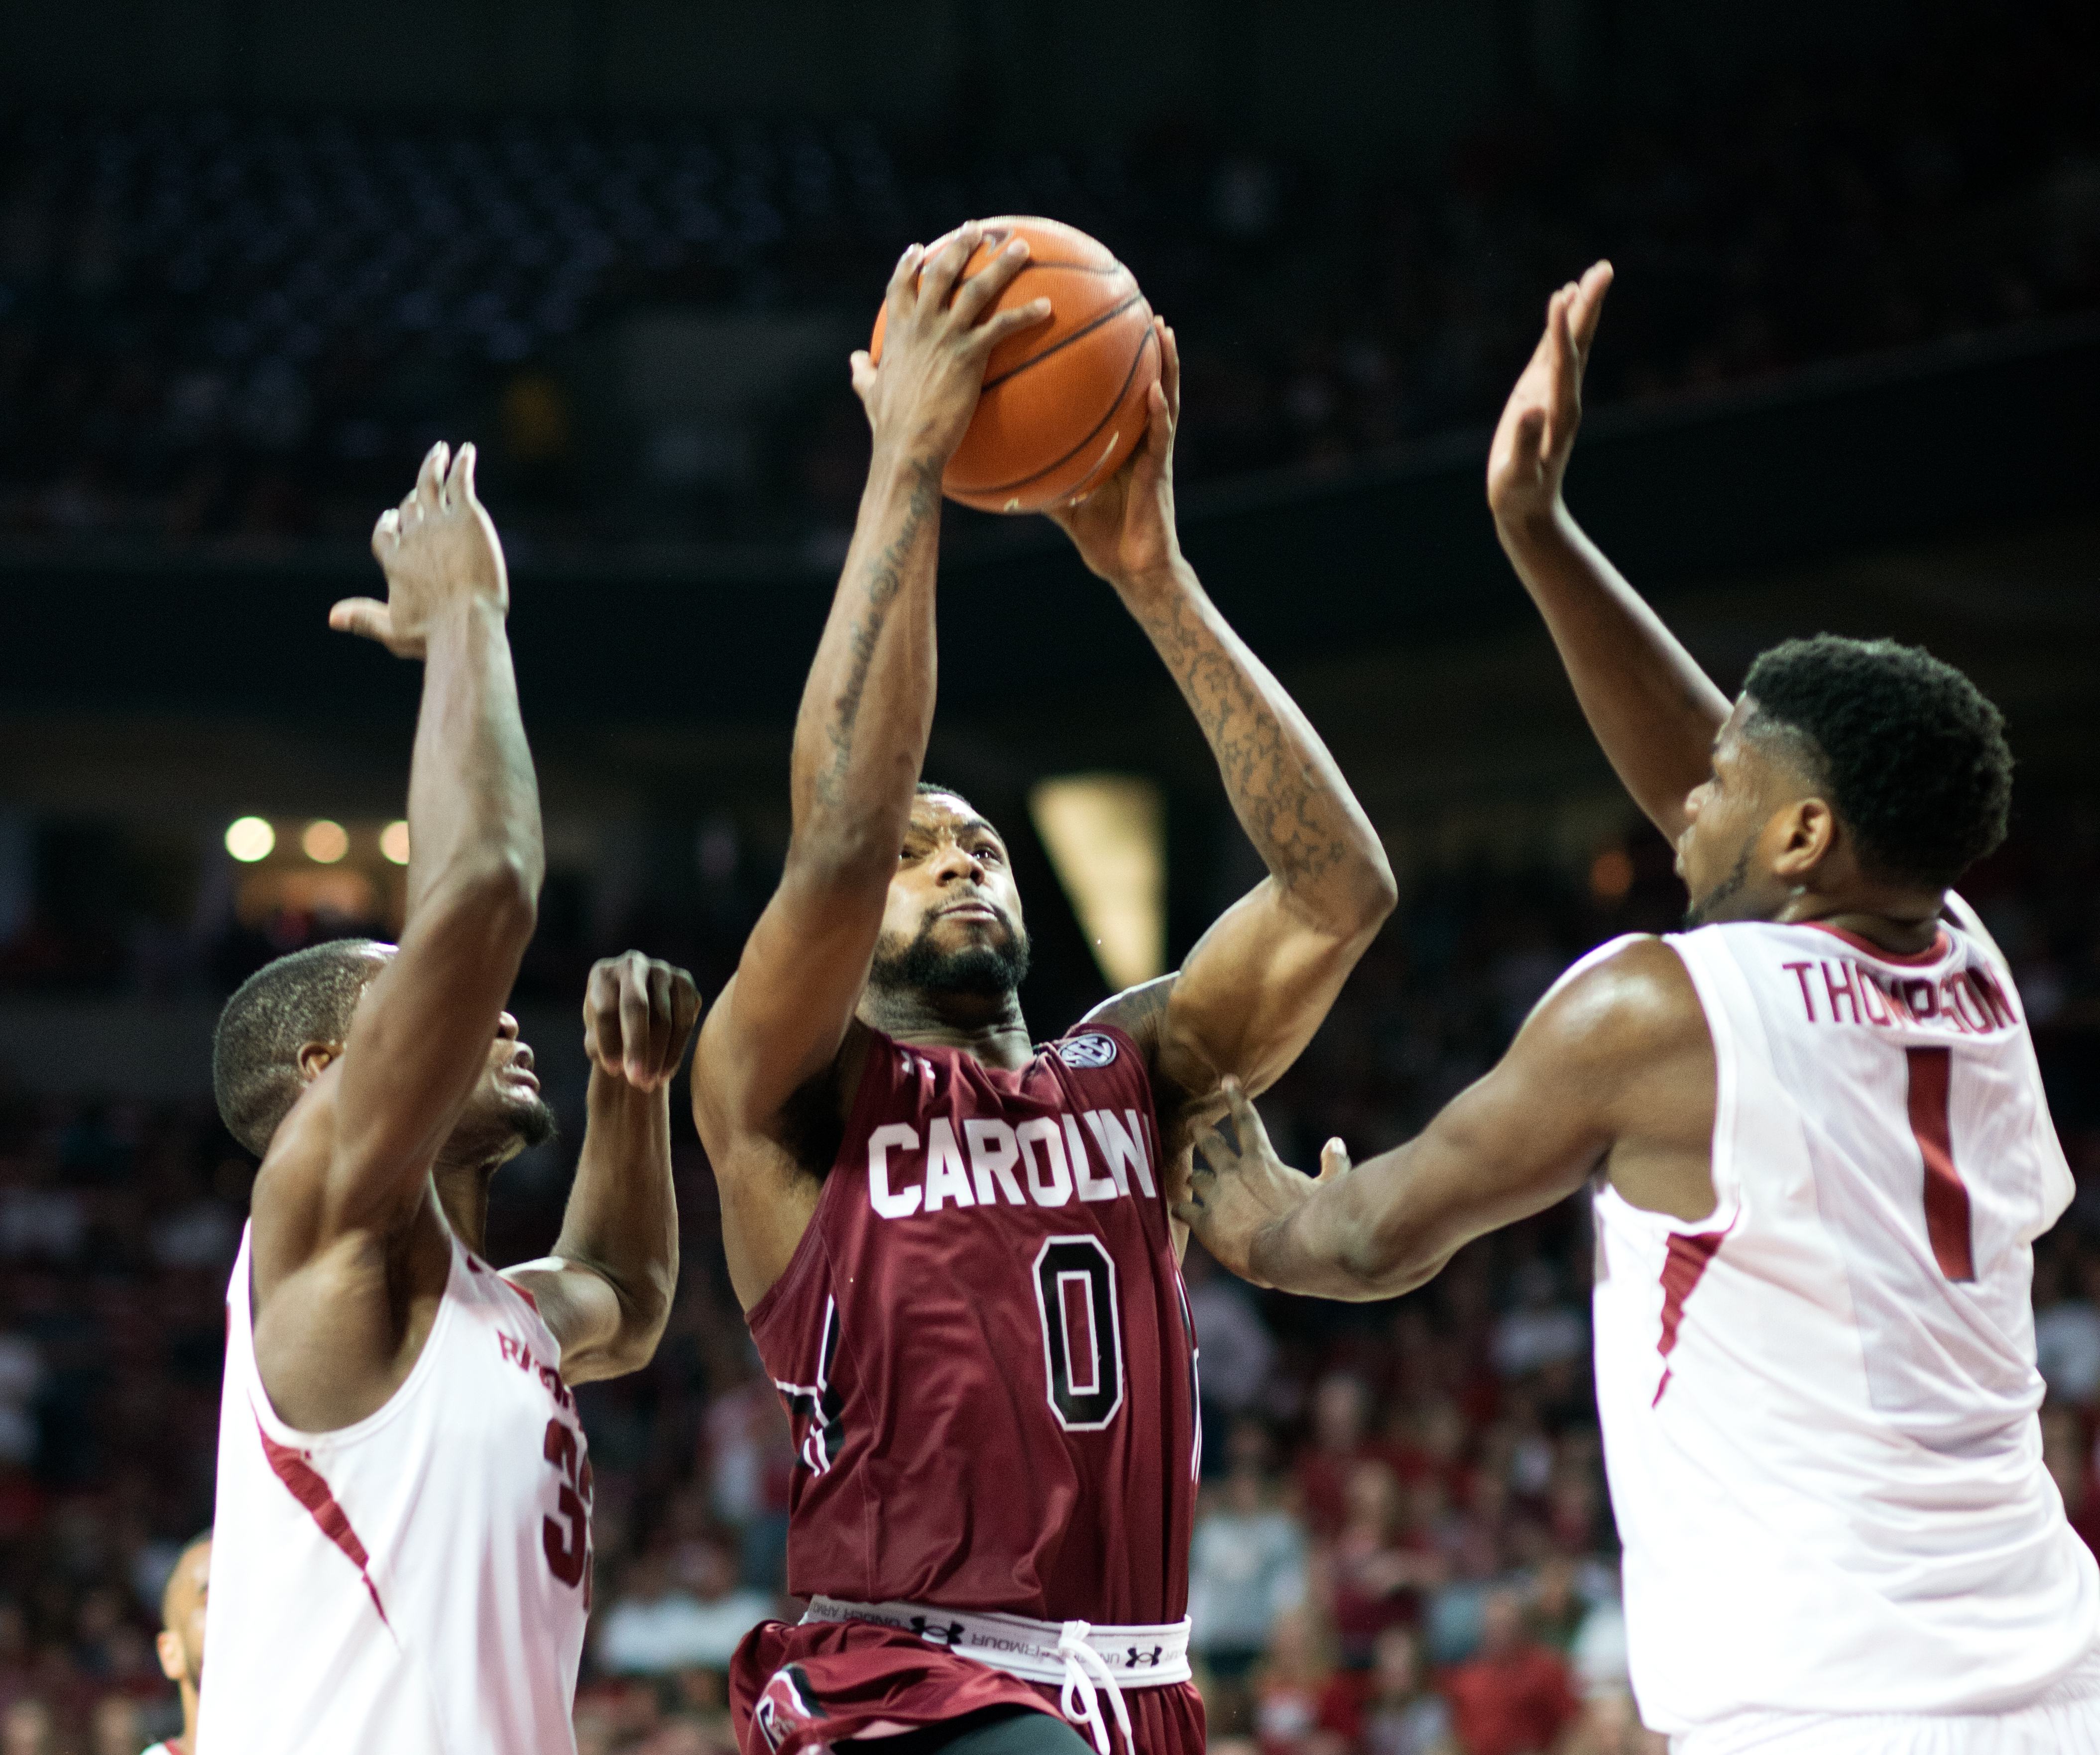 South Carolina's Sindarius Thornwell (0) shoots a basket over Arkansas' Moses Kingsley (33), left, and Trey Thompson (1), right, in the second half of an NCAA college basketball game in Fayetteville, Ark., Saturday, March 5, 2016. South Carolina won 76-61